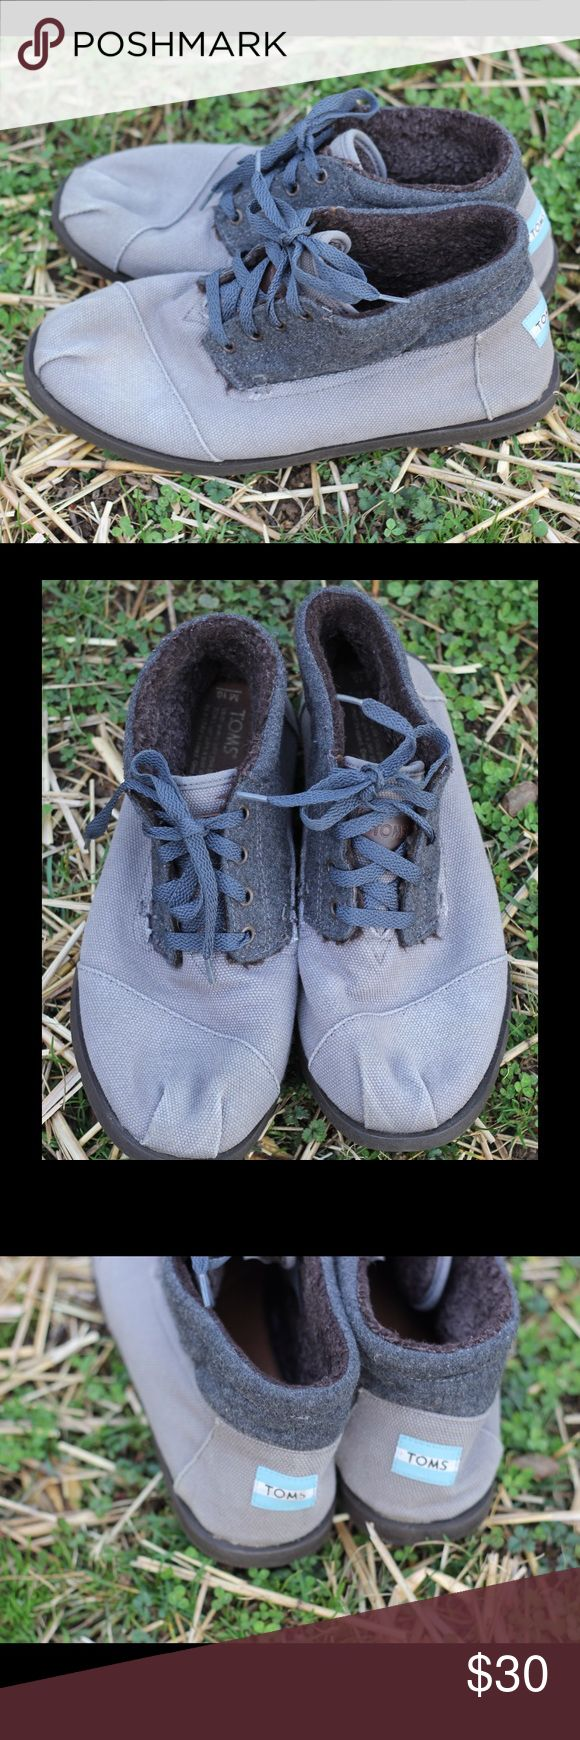 TOMS Botas Canvas Wool Shoe Chukka Boots 10 TOMS Botas Canvas Wool Shoes, sz 10. Fee minor marks & wear. Nice overall condition and smoke free home. Thanks! TOMS Shoes Chukka Boots